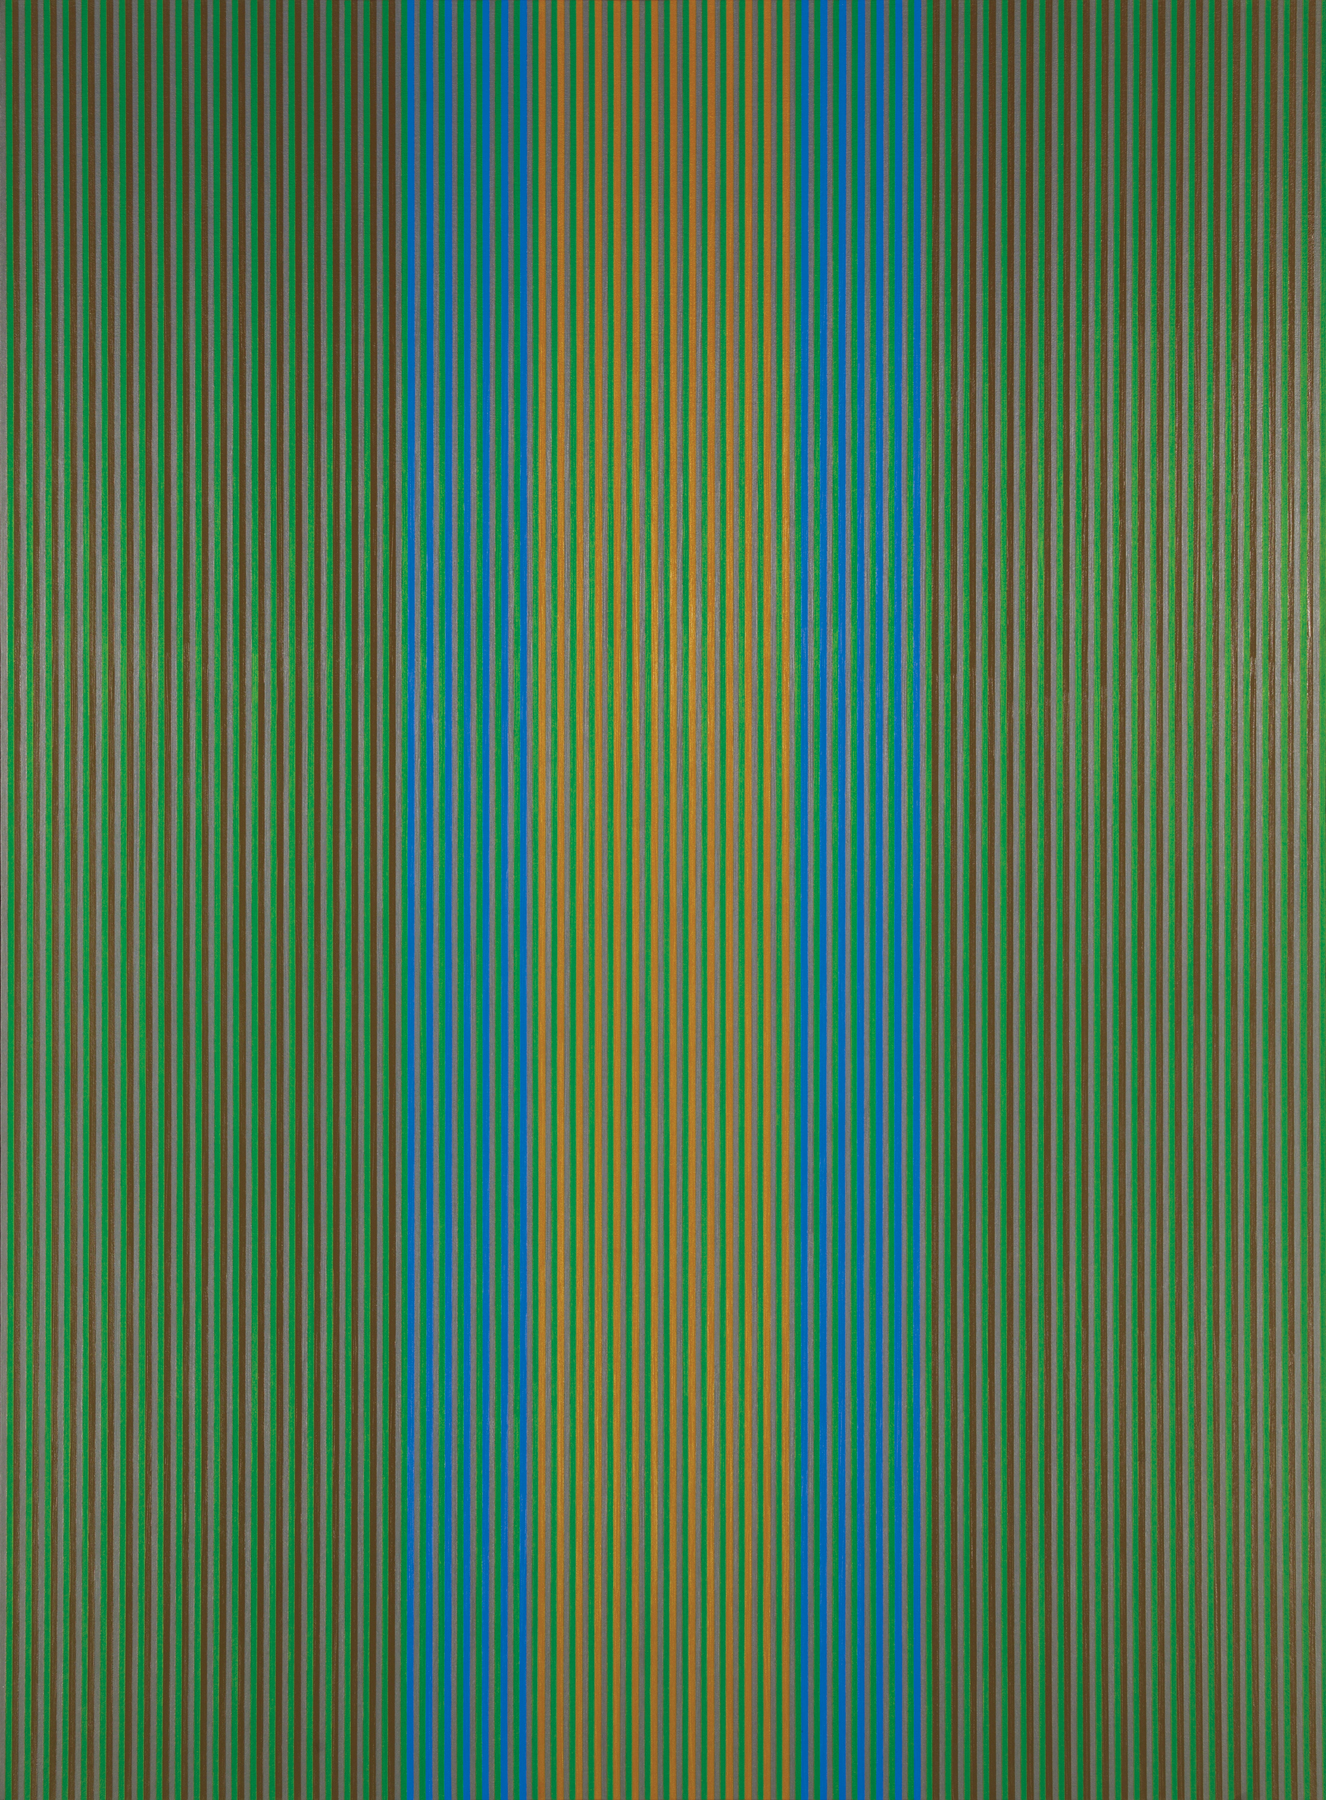 #21 (green, brown) , 1979  oil on canvas 72 x 54 inches; 182.9 x 137.2 centimeters